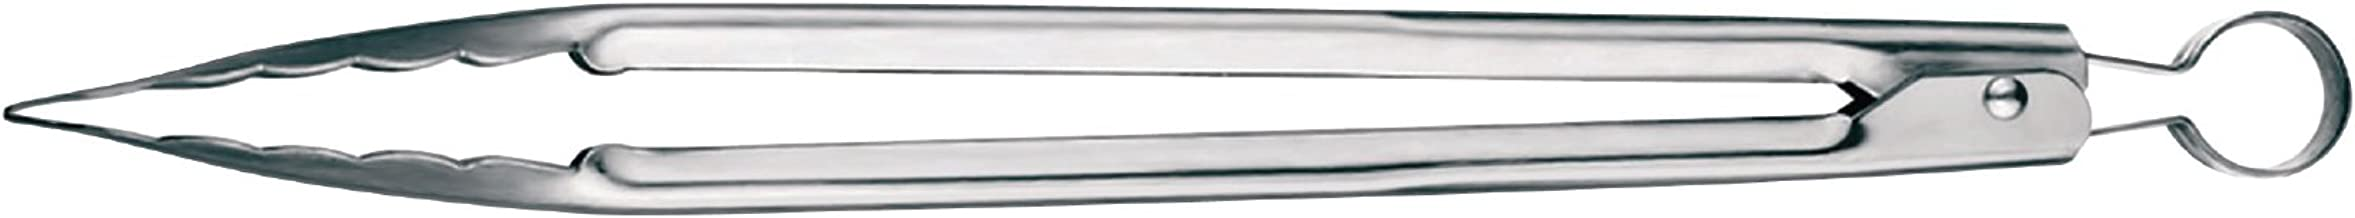 Cuisipro 747368 Serving Mini Stainless Tongs, Stainless Steel